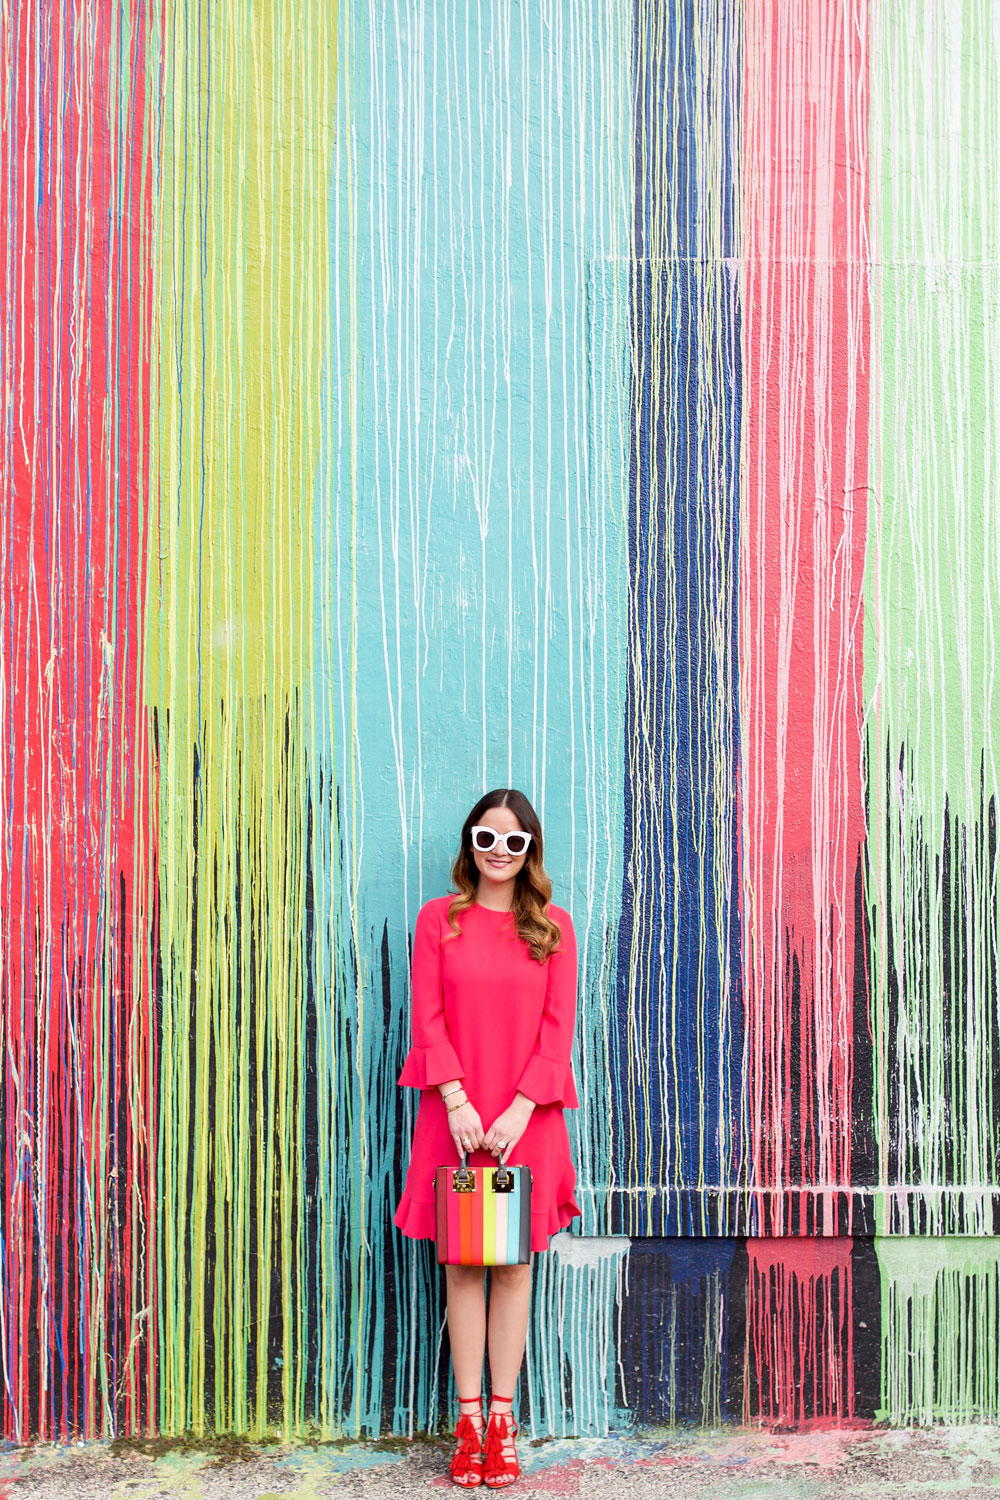 Dripping Paint Mural Wall Houston